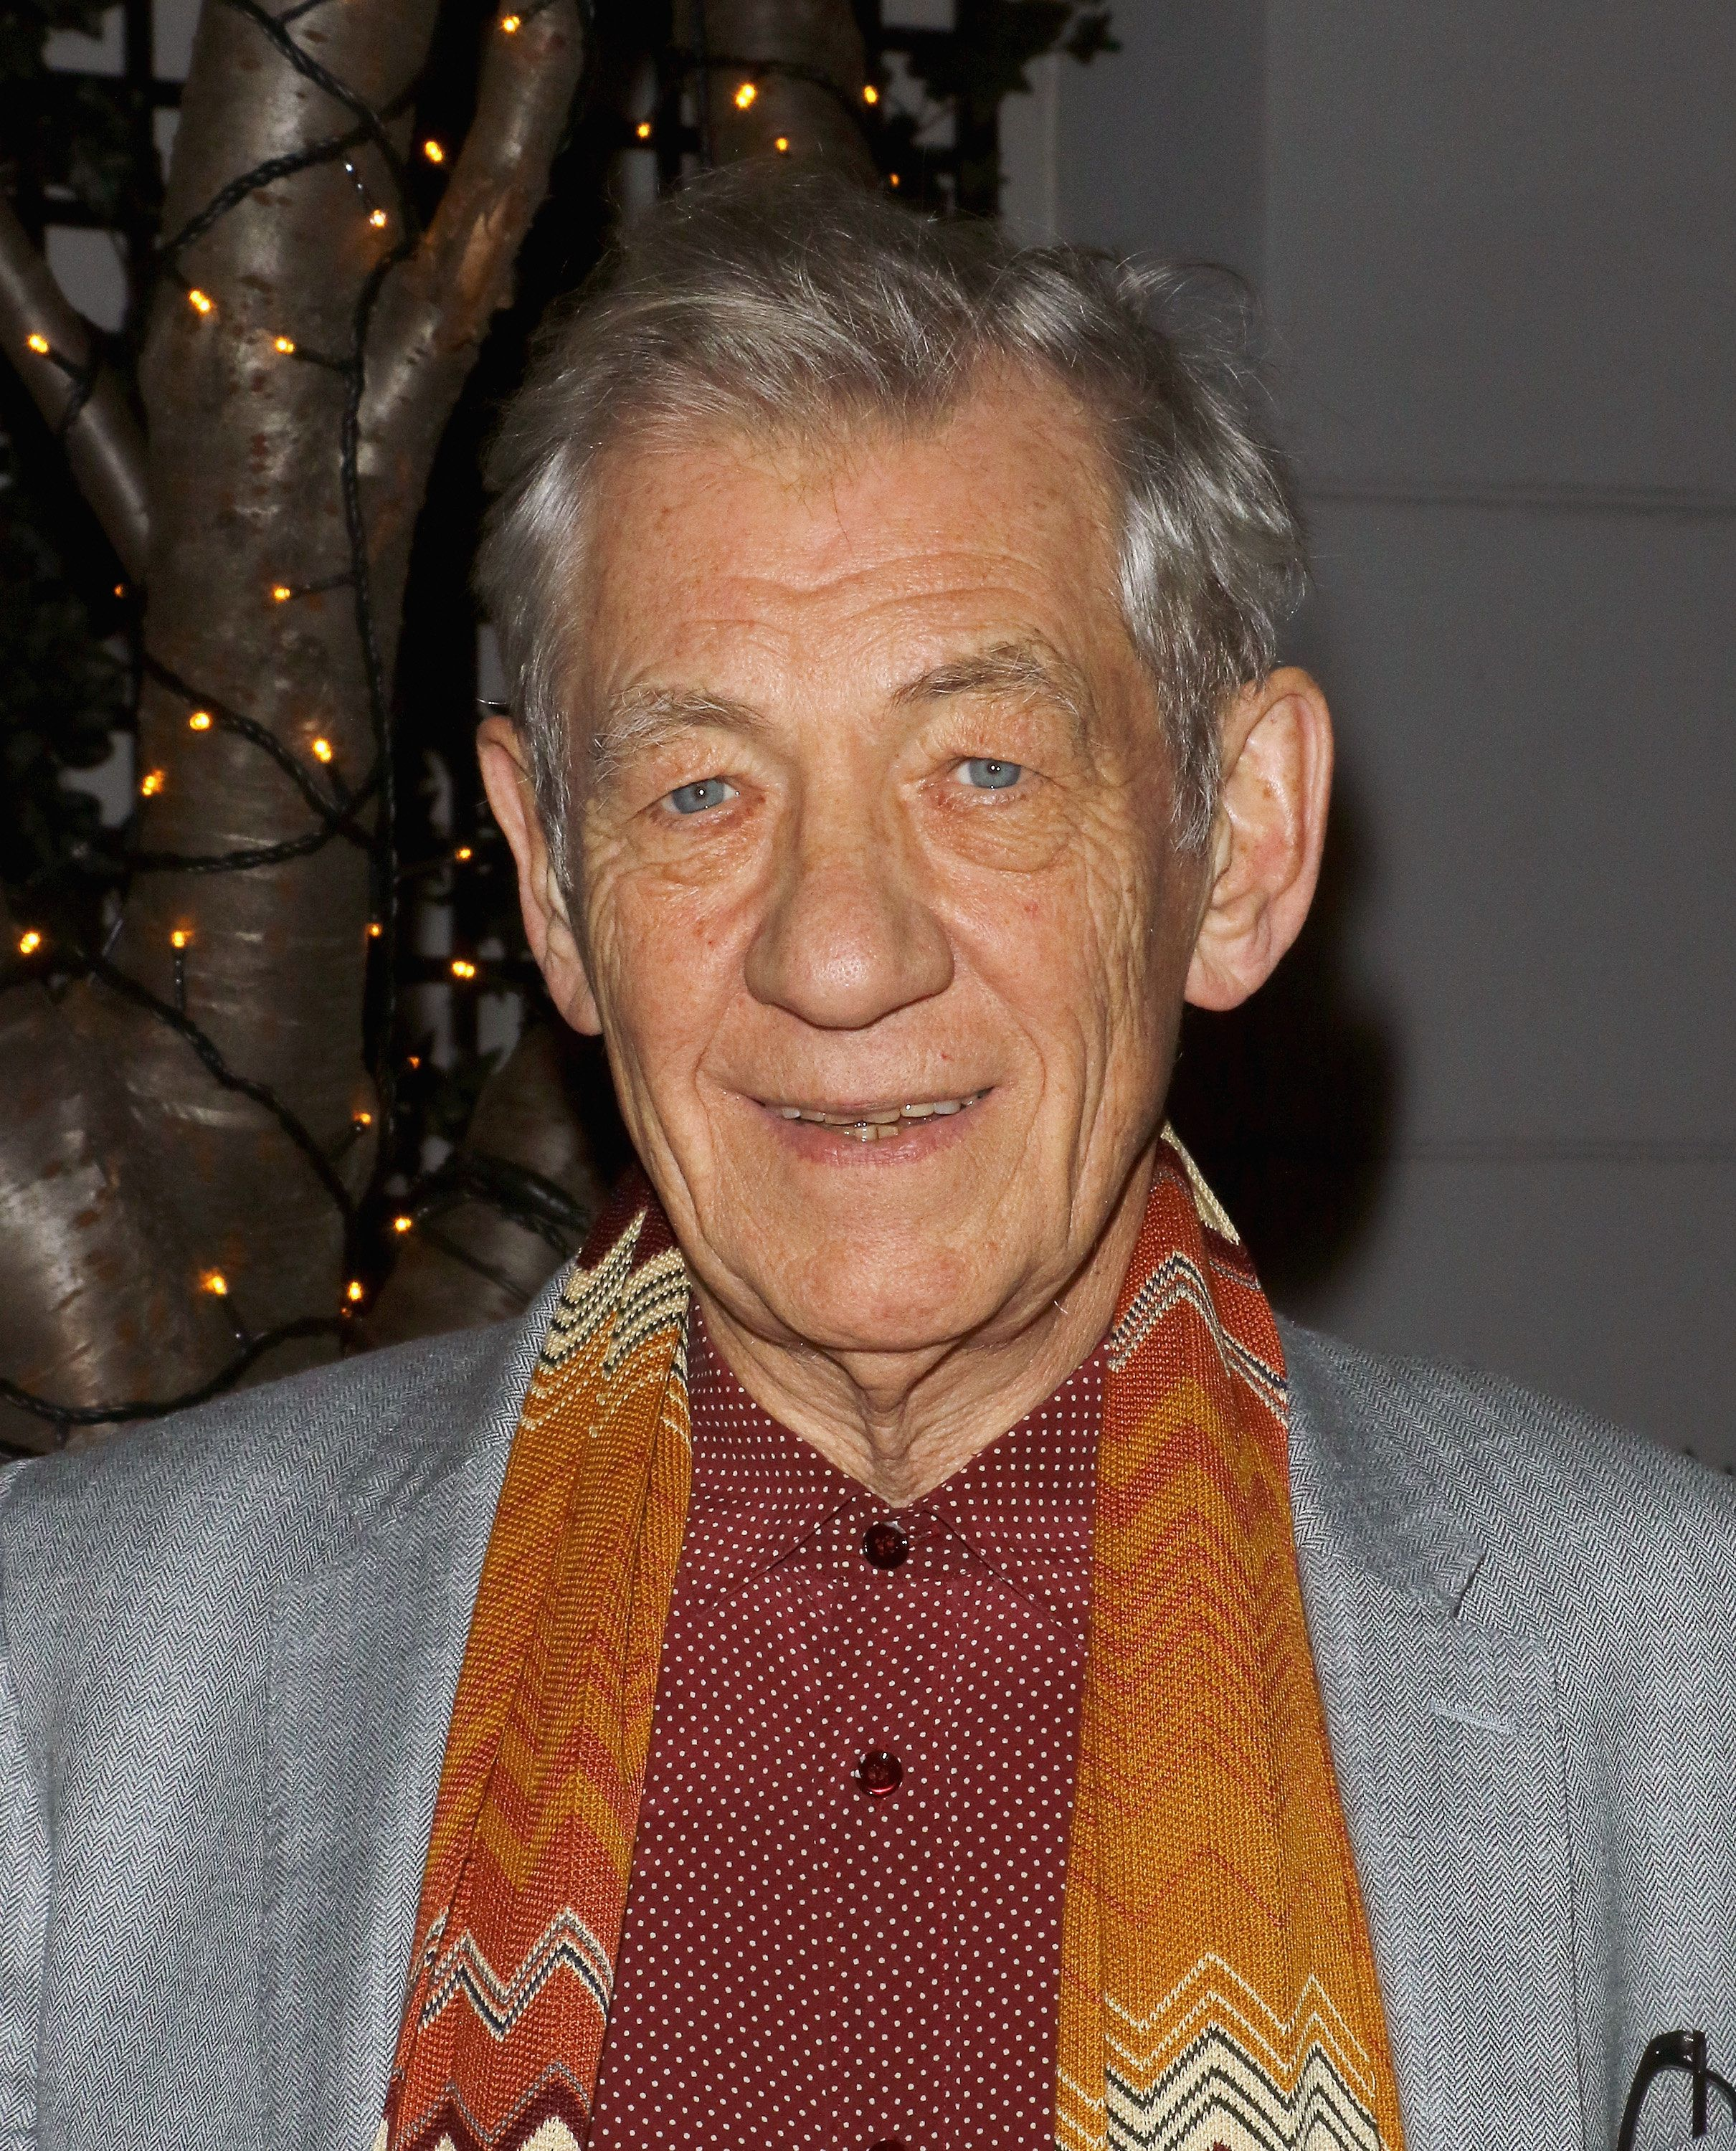 NEW YORK, NY - DECEMBER 03:  Actor Ian McKellen attends the after party for Sundance Selects' '45 Years' screening hosted by The Cinema Society with Lillet and NARS at Laduree Soho on December 3, 2015 in New York City.  (Photo by Jim Spellman/WireImage)